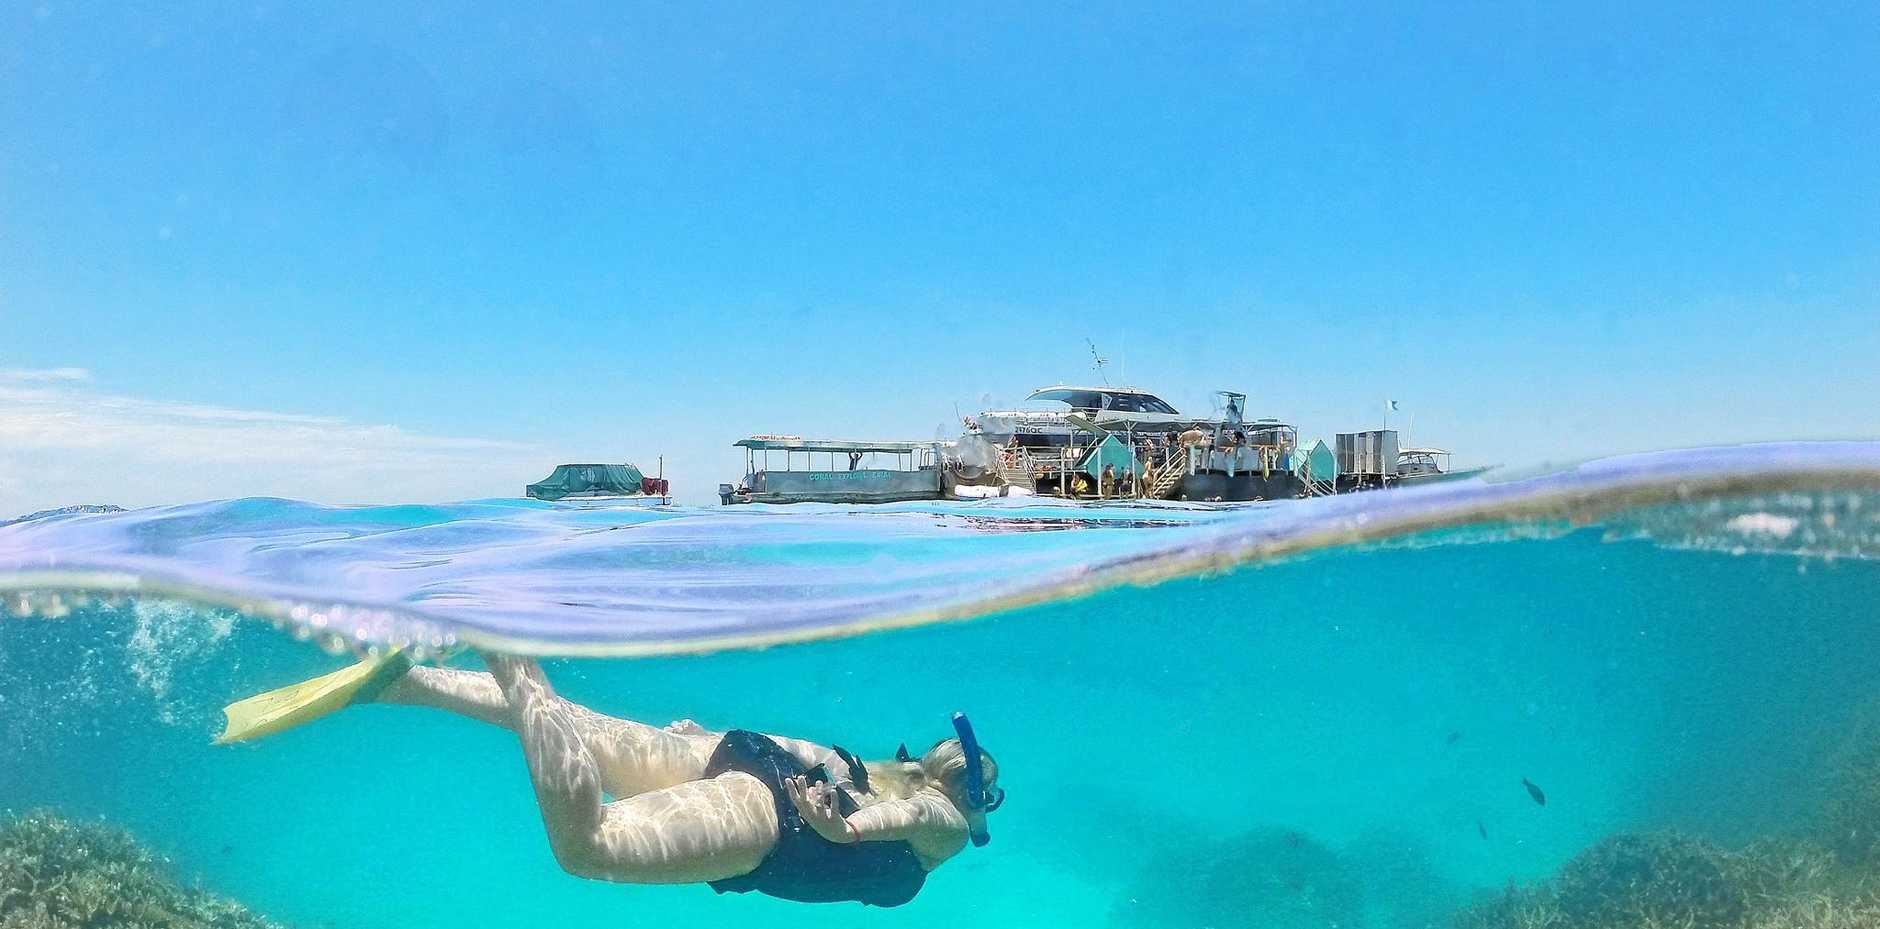 The World's first Instameet was held on Lady Musgrave Island.